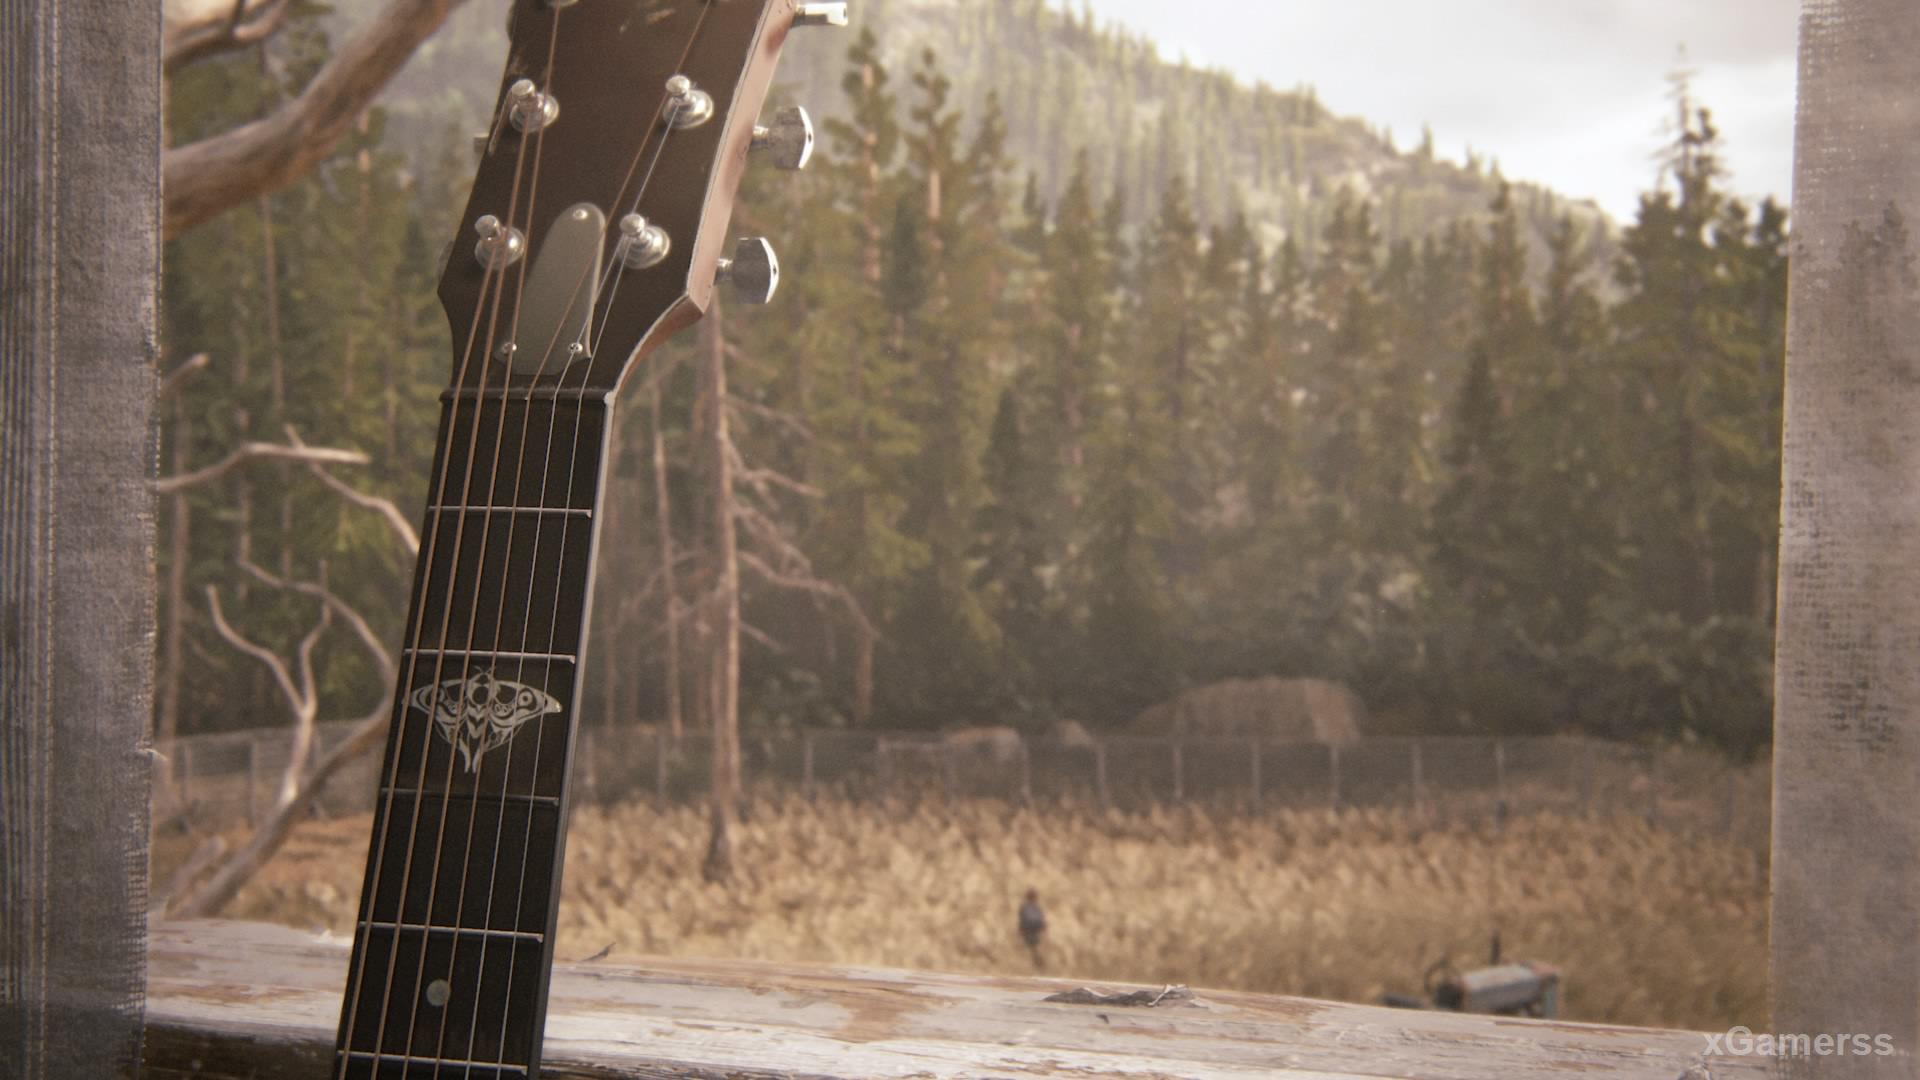 Guitar in game The Last of Us 2